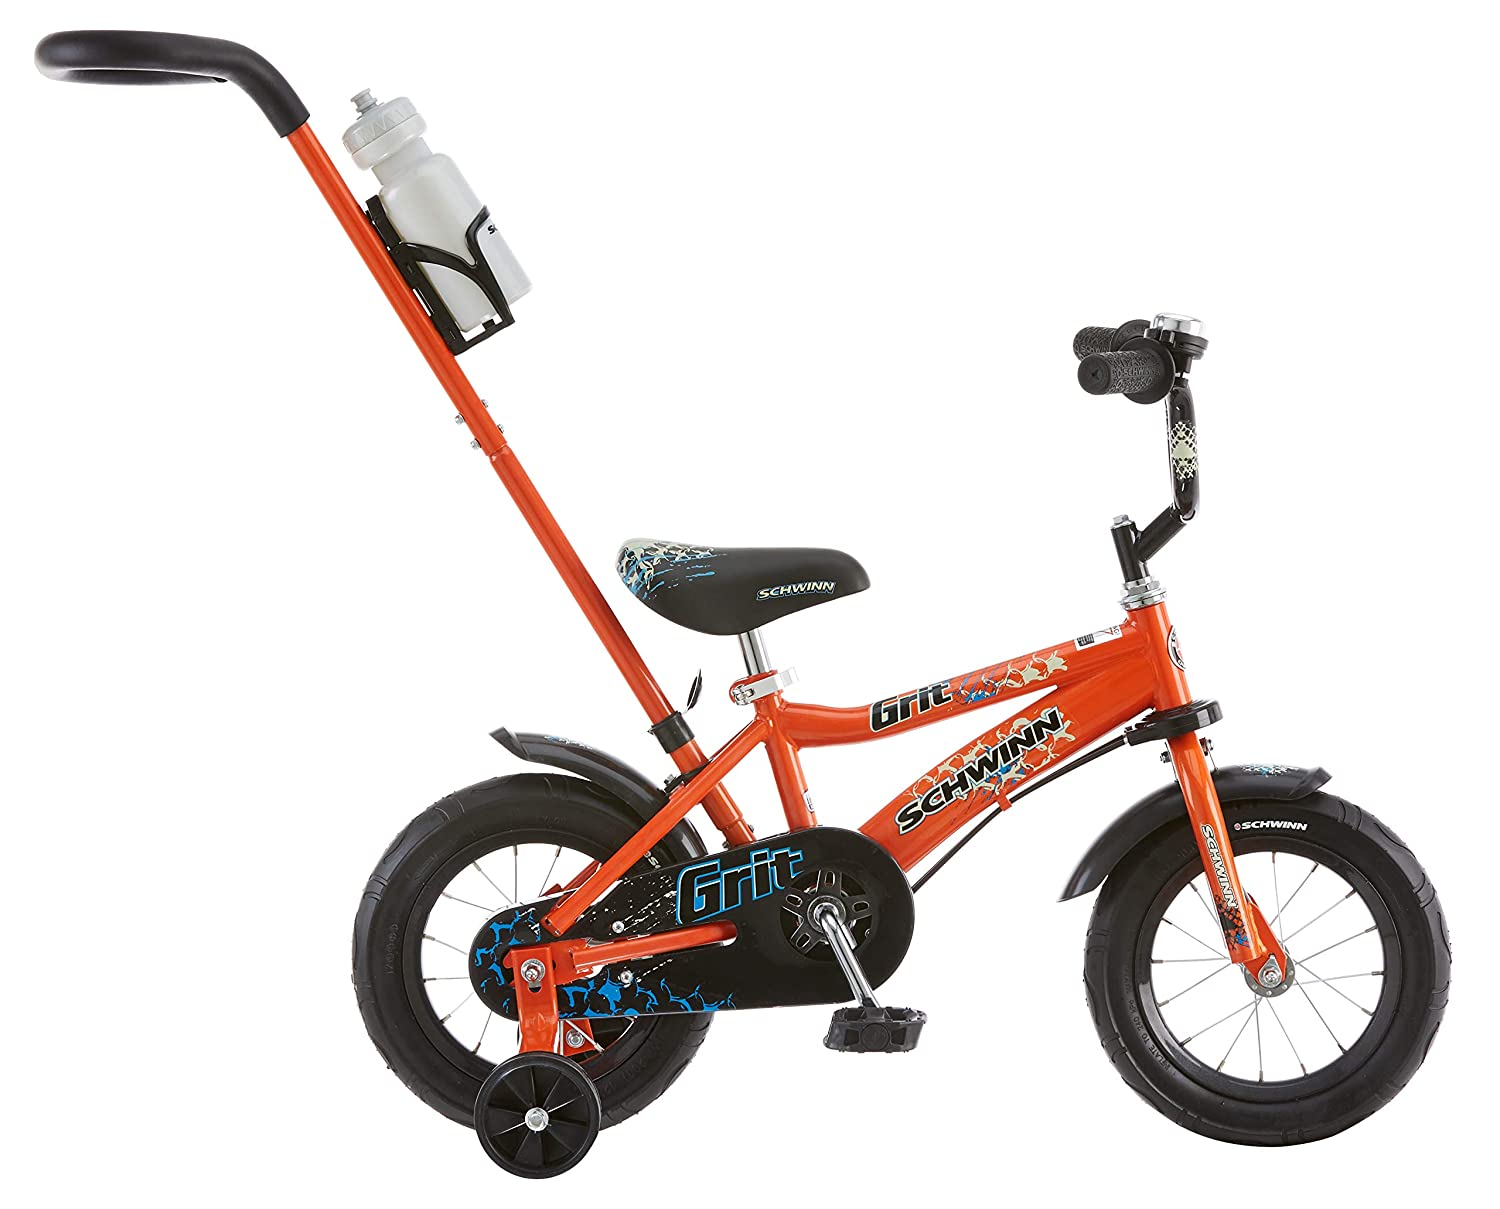 abd4c184d41 Amazon.com : Schwinn Grit Steerable Kids Bike, Featuring Push Handle for  Easy Steering, Training Wheels, Enclosed Chainguard, Quick-Adjust Seat, and  12-Inch ...